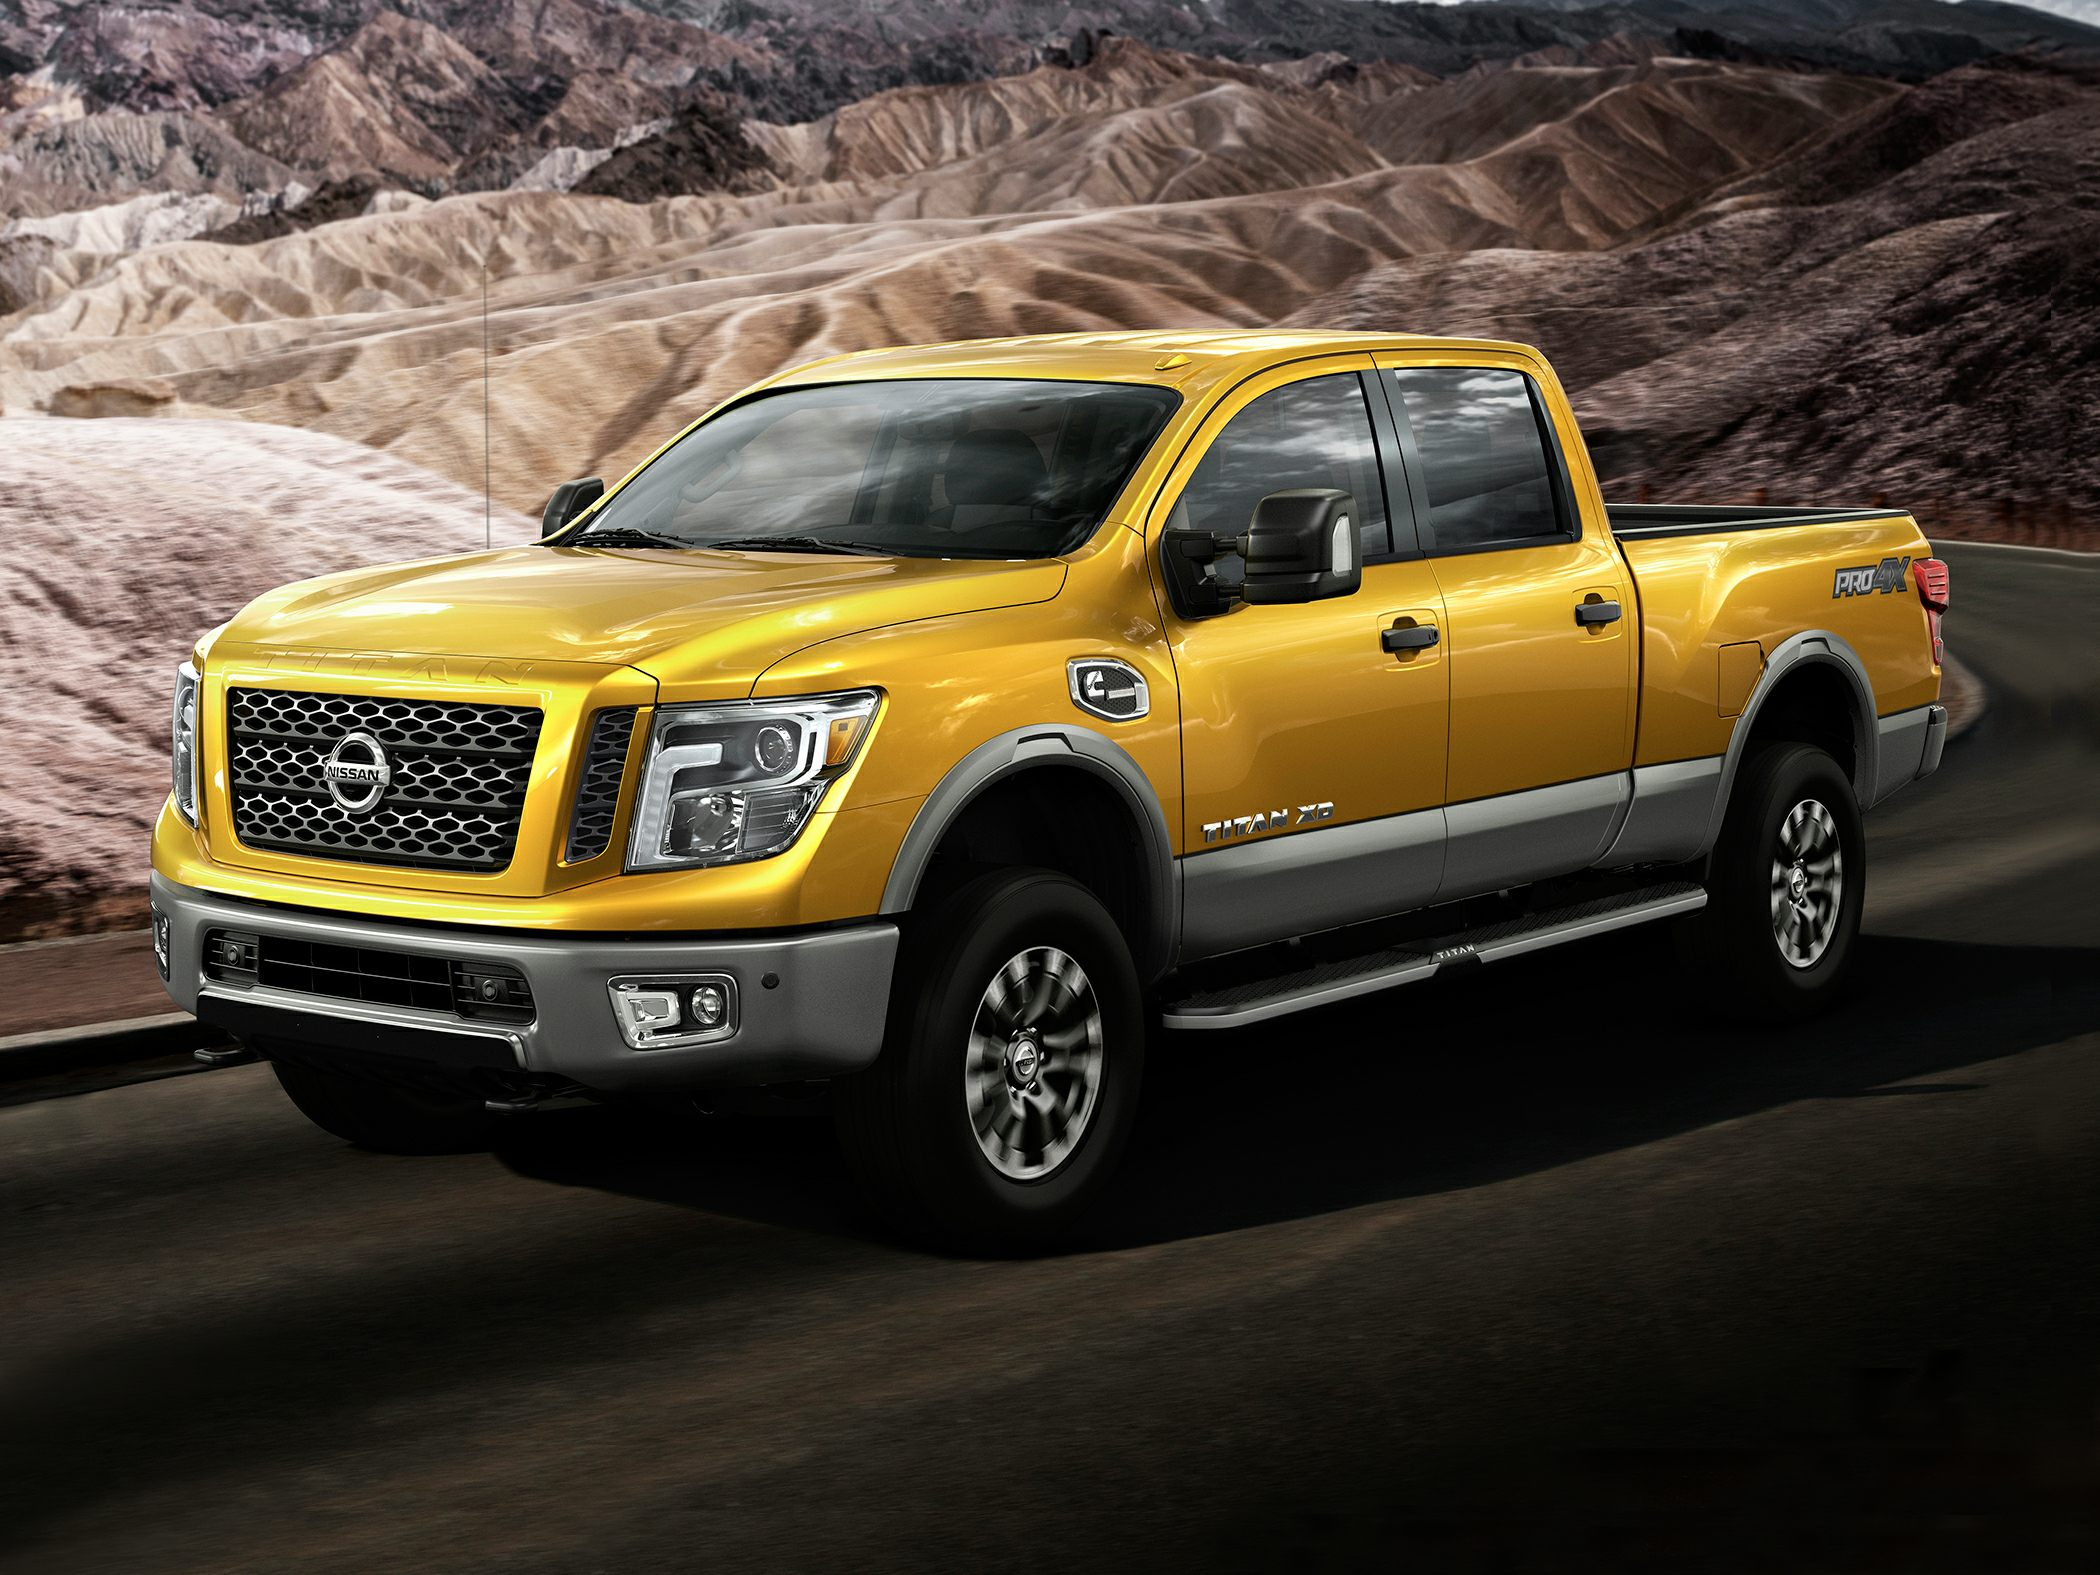 2017 nissan titan xd deals prices incentives leases overview carsdirect. Black Bedroom Furniture Sets. Home Design Ideas